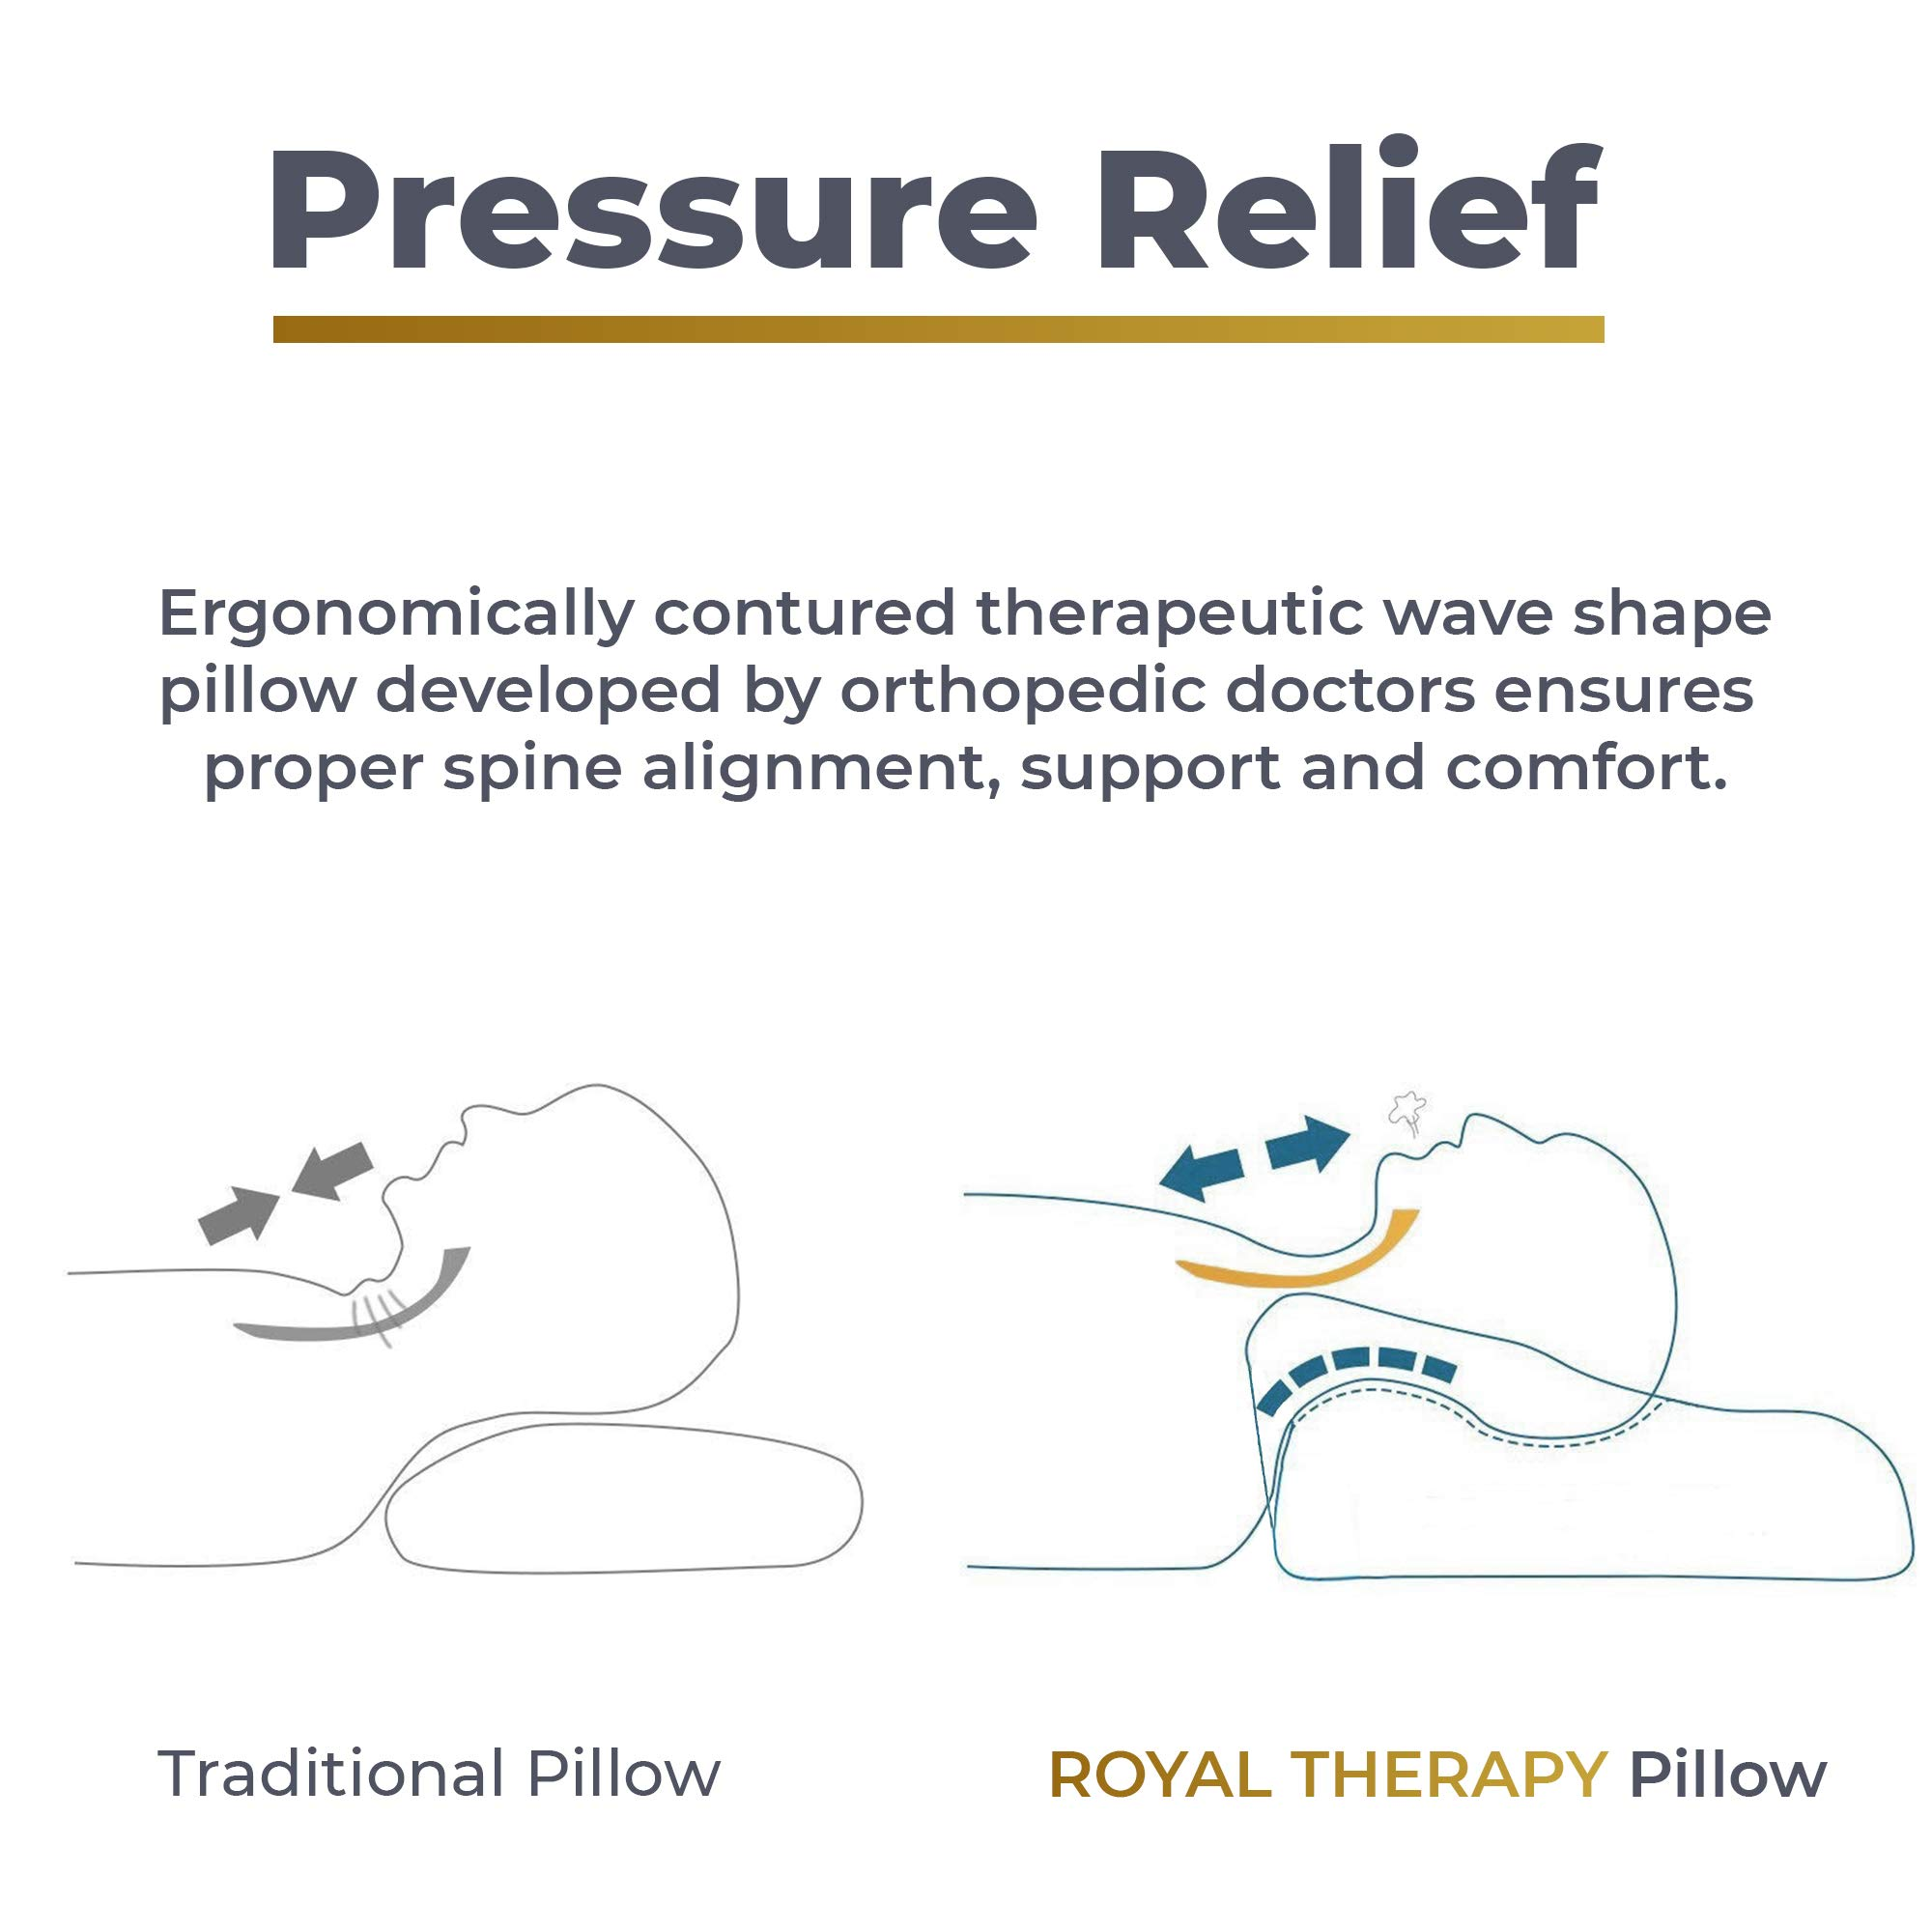 Memory Foam Pillow, Neck Pillow - ROYAL THERAPY Bamboo Adjustable Side Sleeper Pillow for Neck & Shoulder, Support for Back, Stomach, Side Sleepers, Orthopedic Contour Pillow, CertiPUR-US certified by Royal Therapy (Image #4)